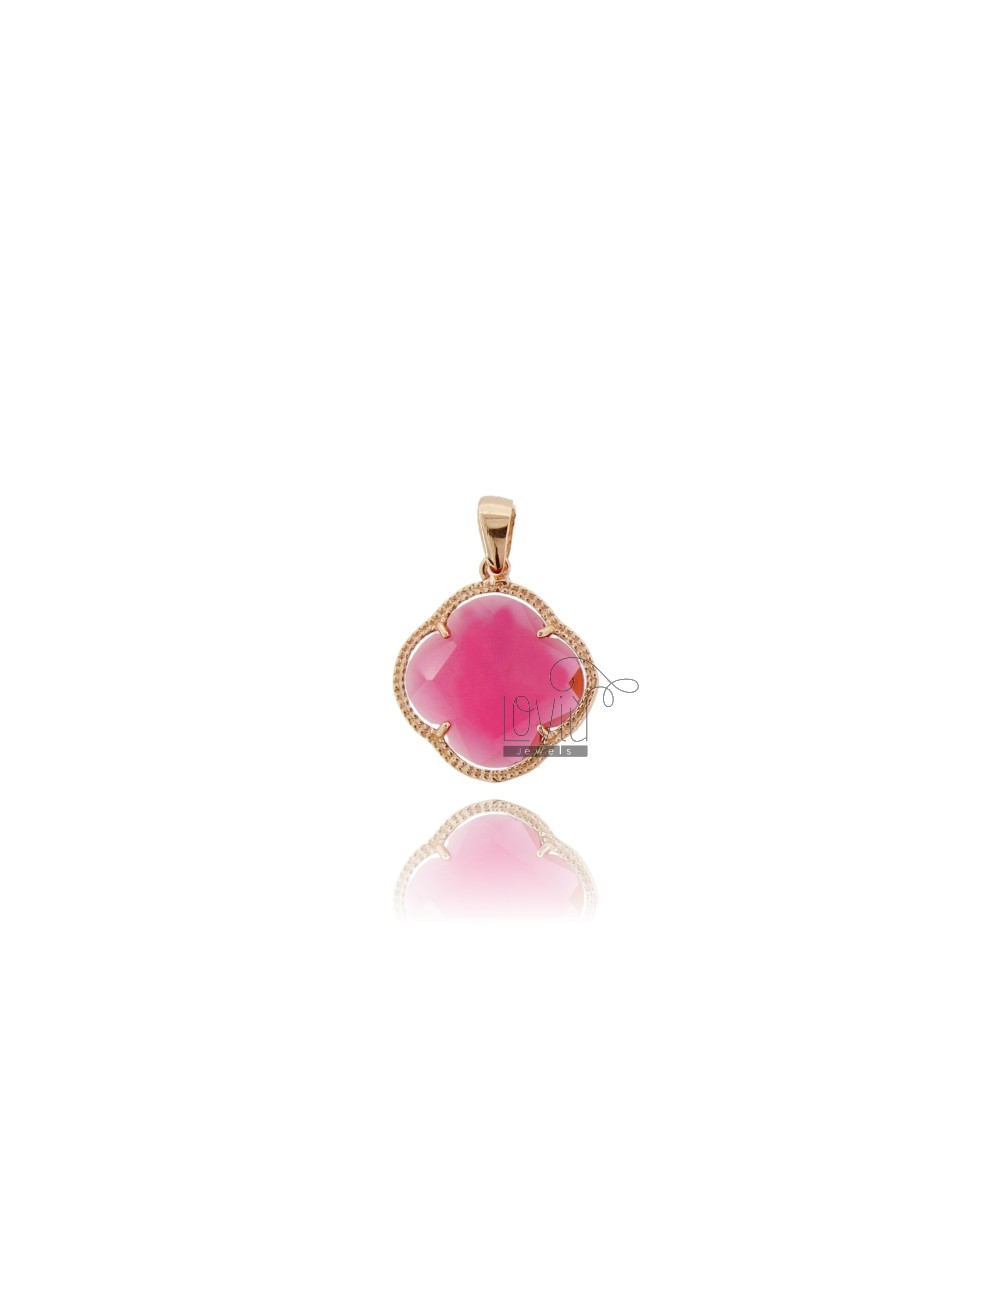 FLOWER PENDANT STONE HYDROTHERMAL COLOR RED AND PINK 16 ROSE GOLD PLATED AG TIT 925